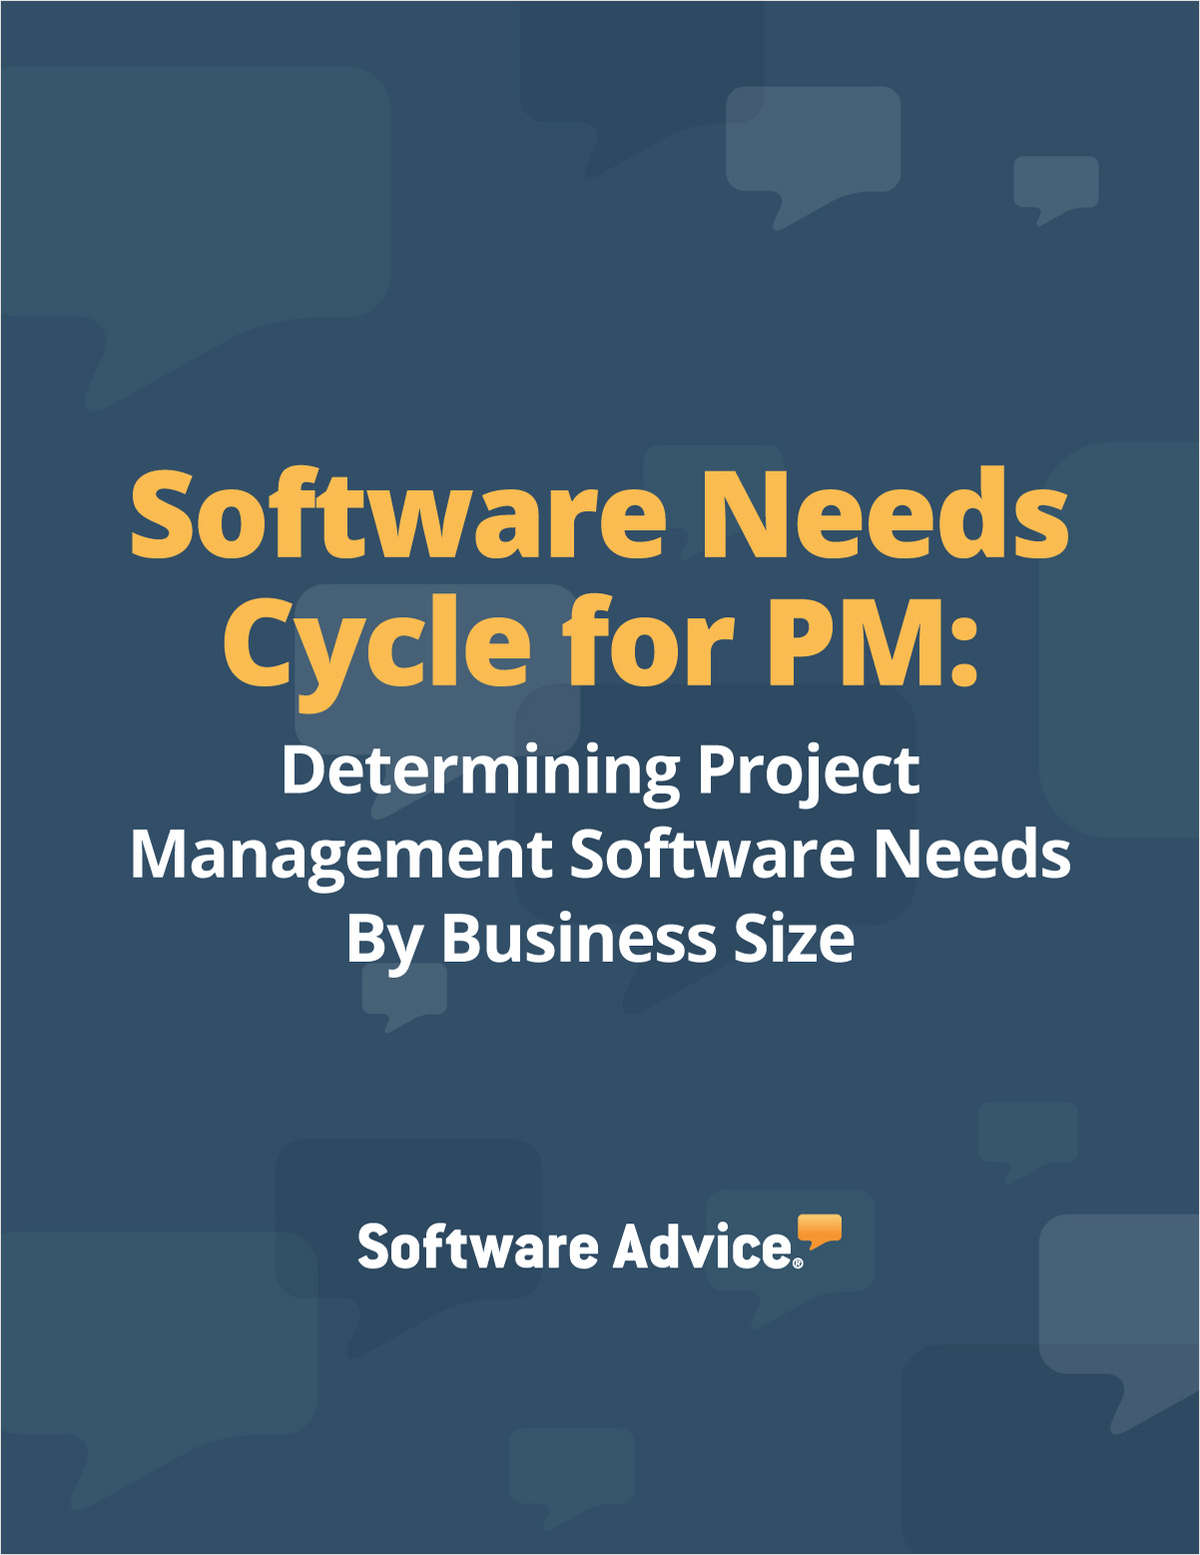 Software Needs Cycle for PM: Determining Project Management Software Needs By Business Size